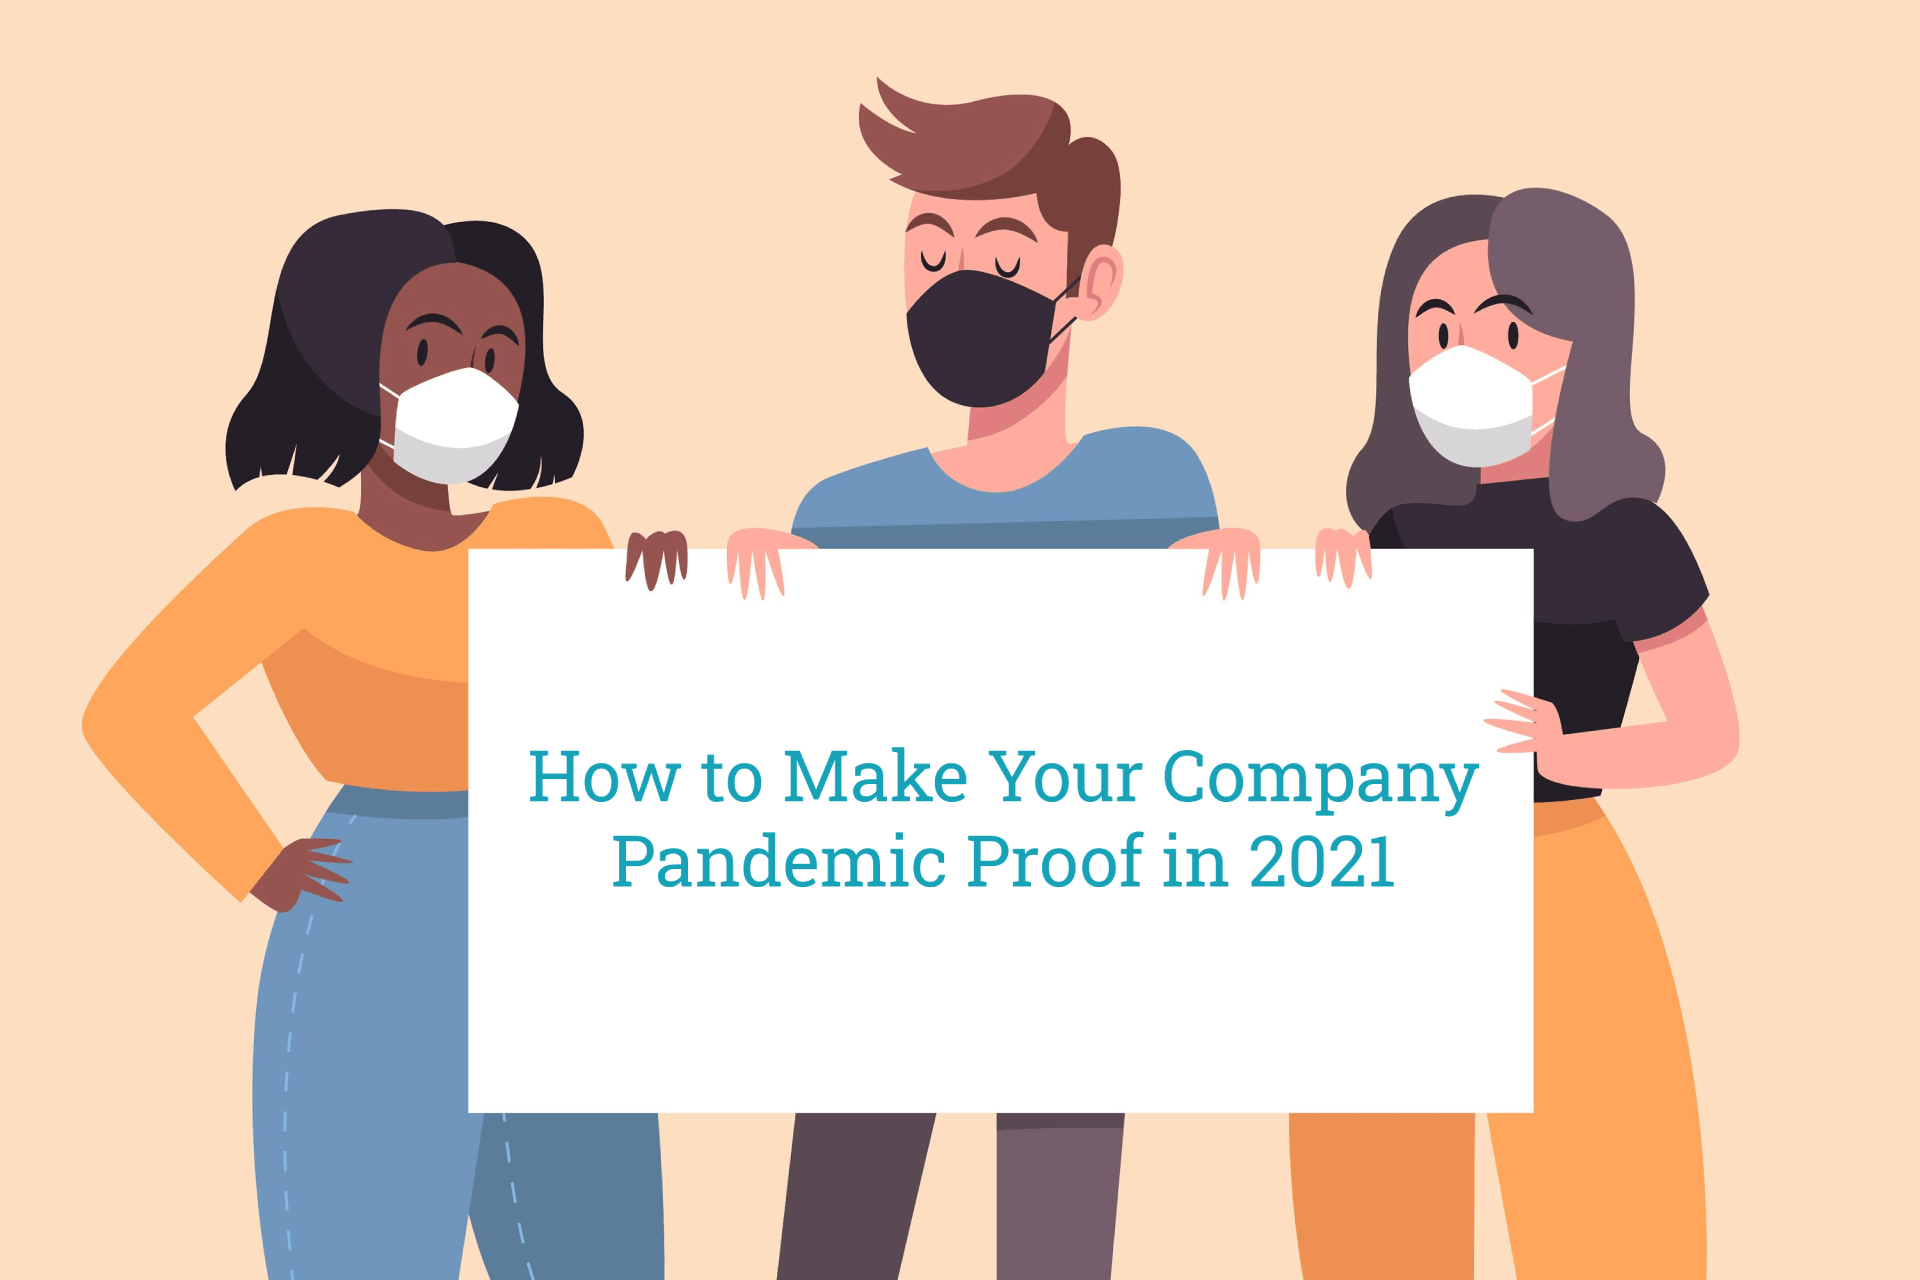 make your company pandemic proof in 2021